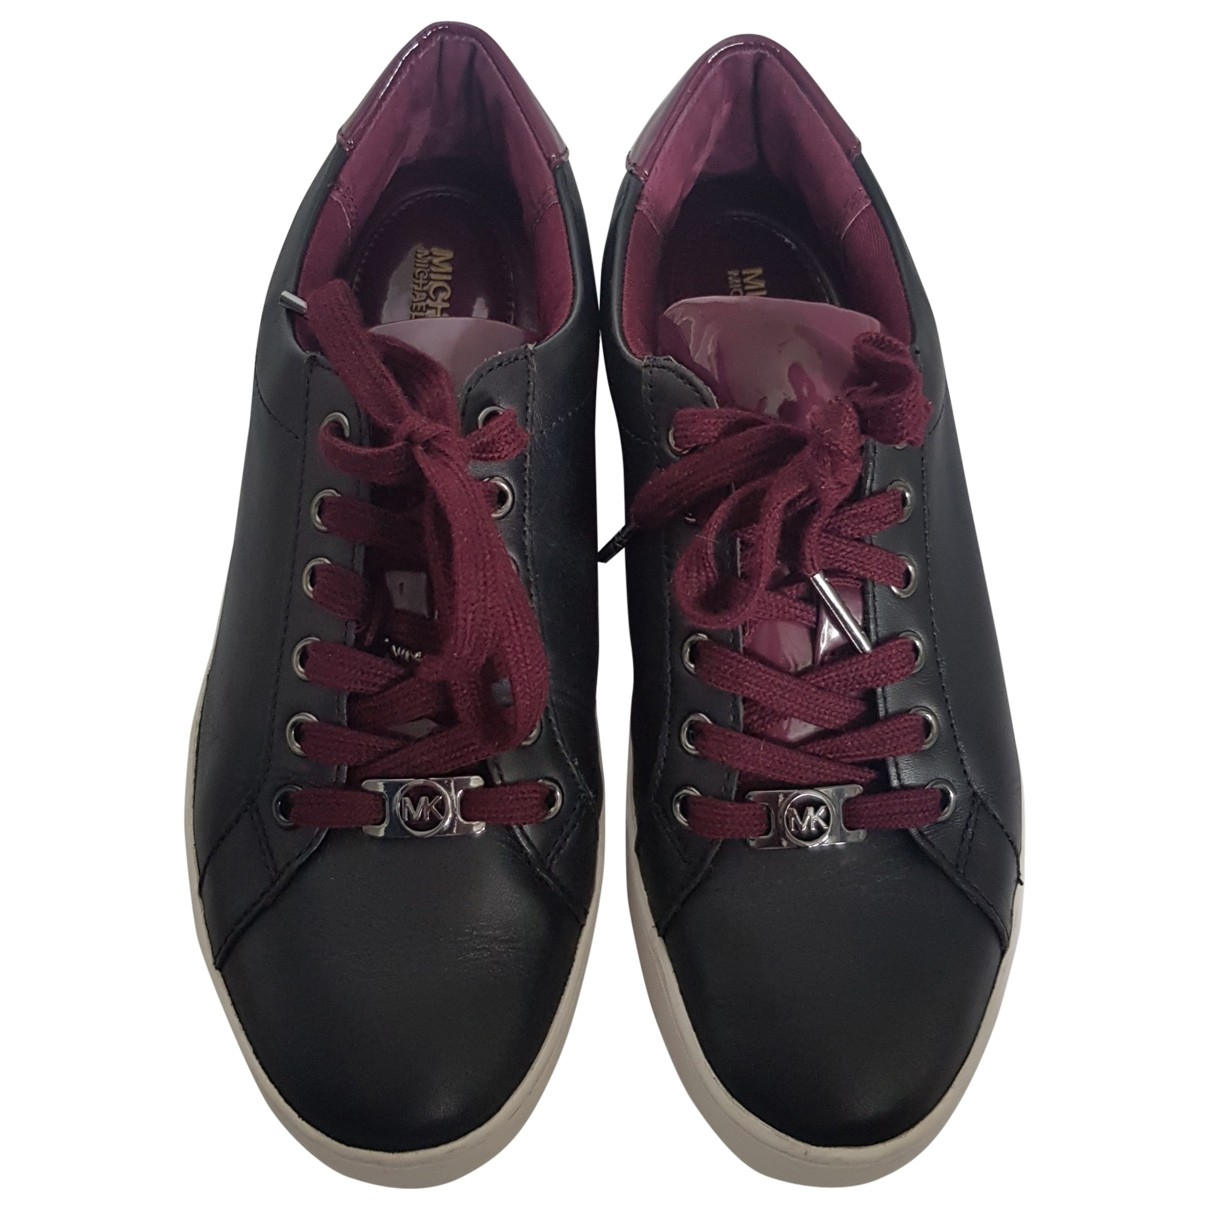 Michael Kors \N Black Leather Trainers for Women 7 US